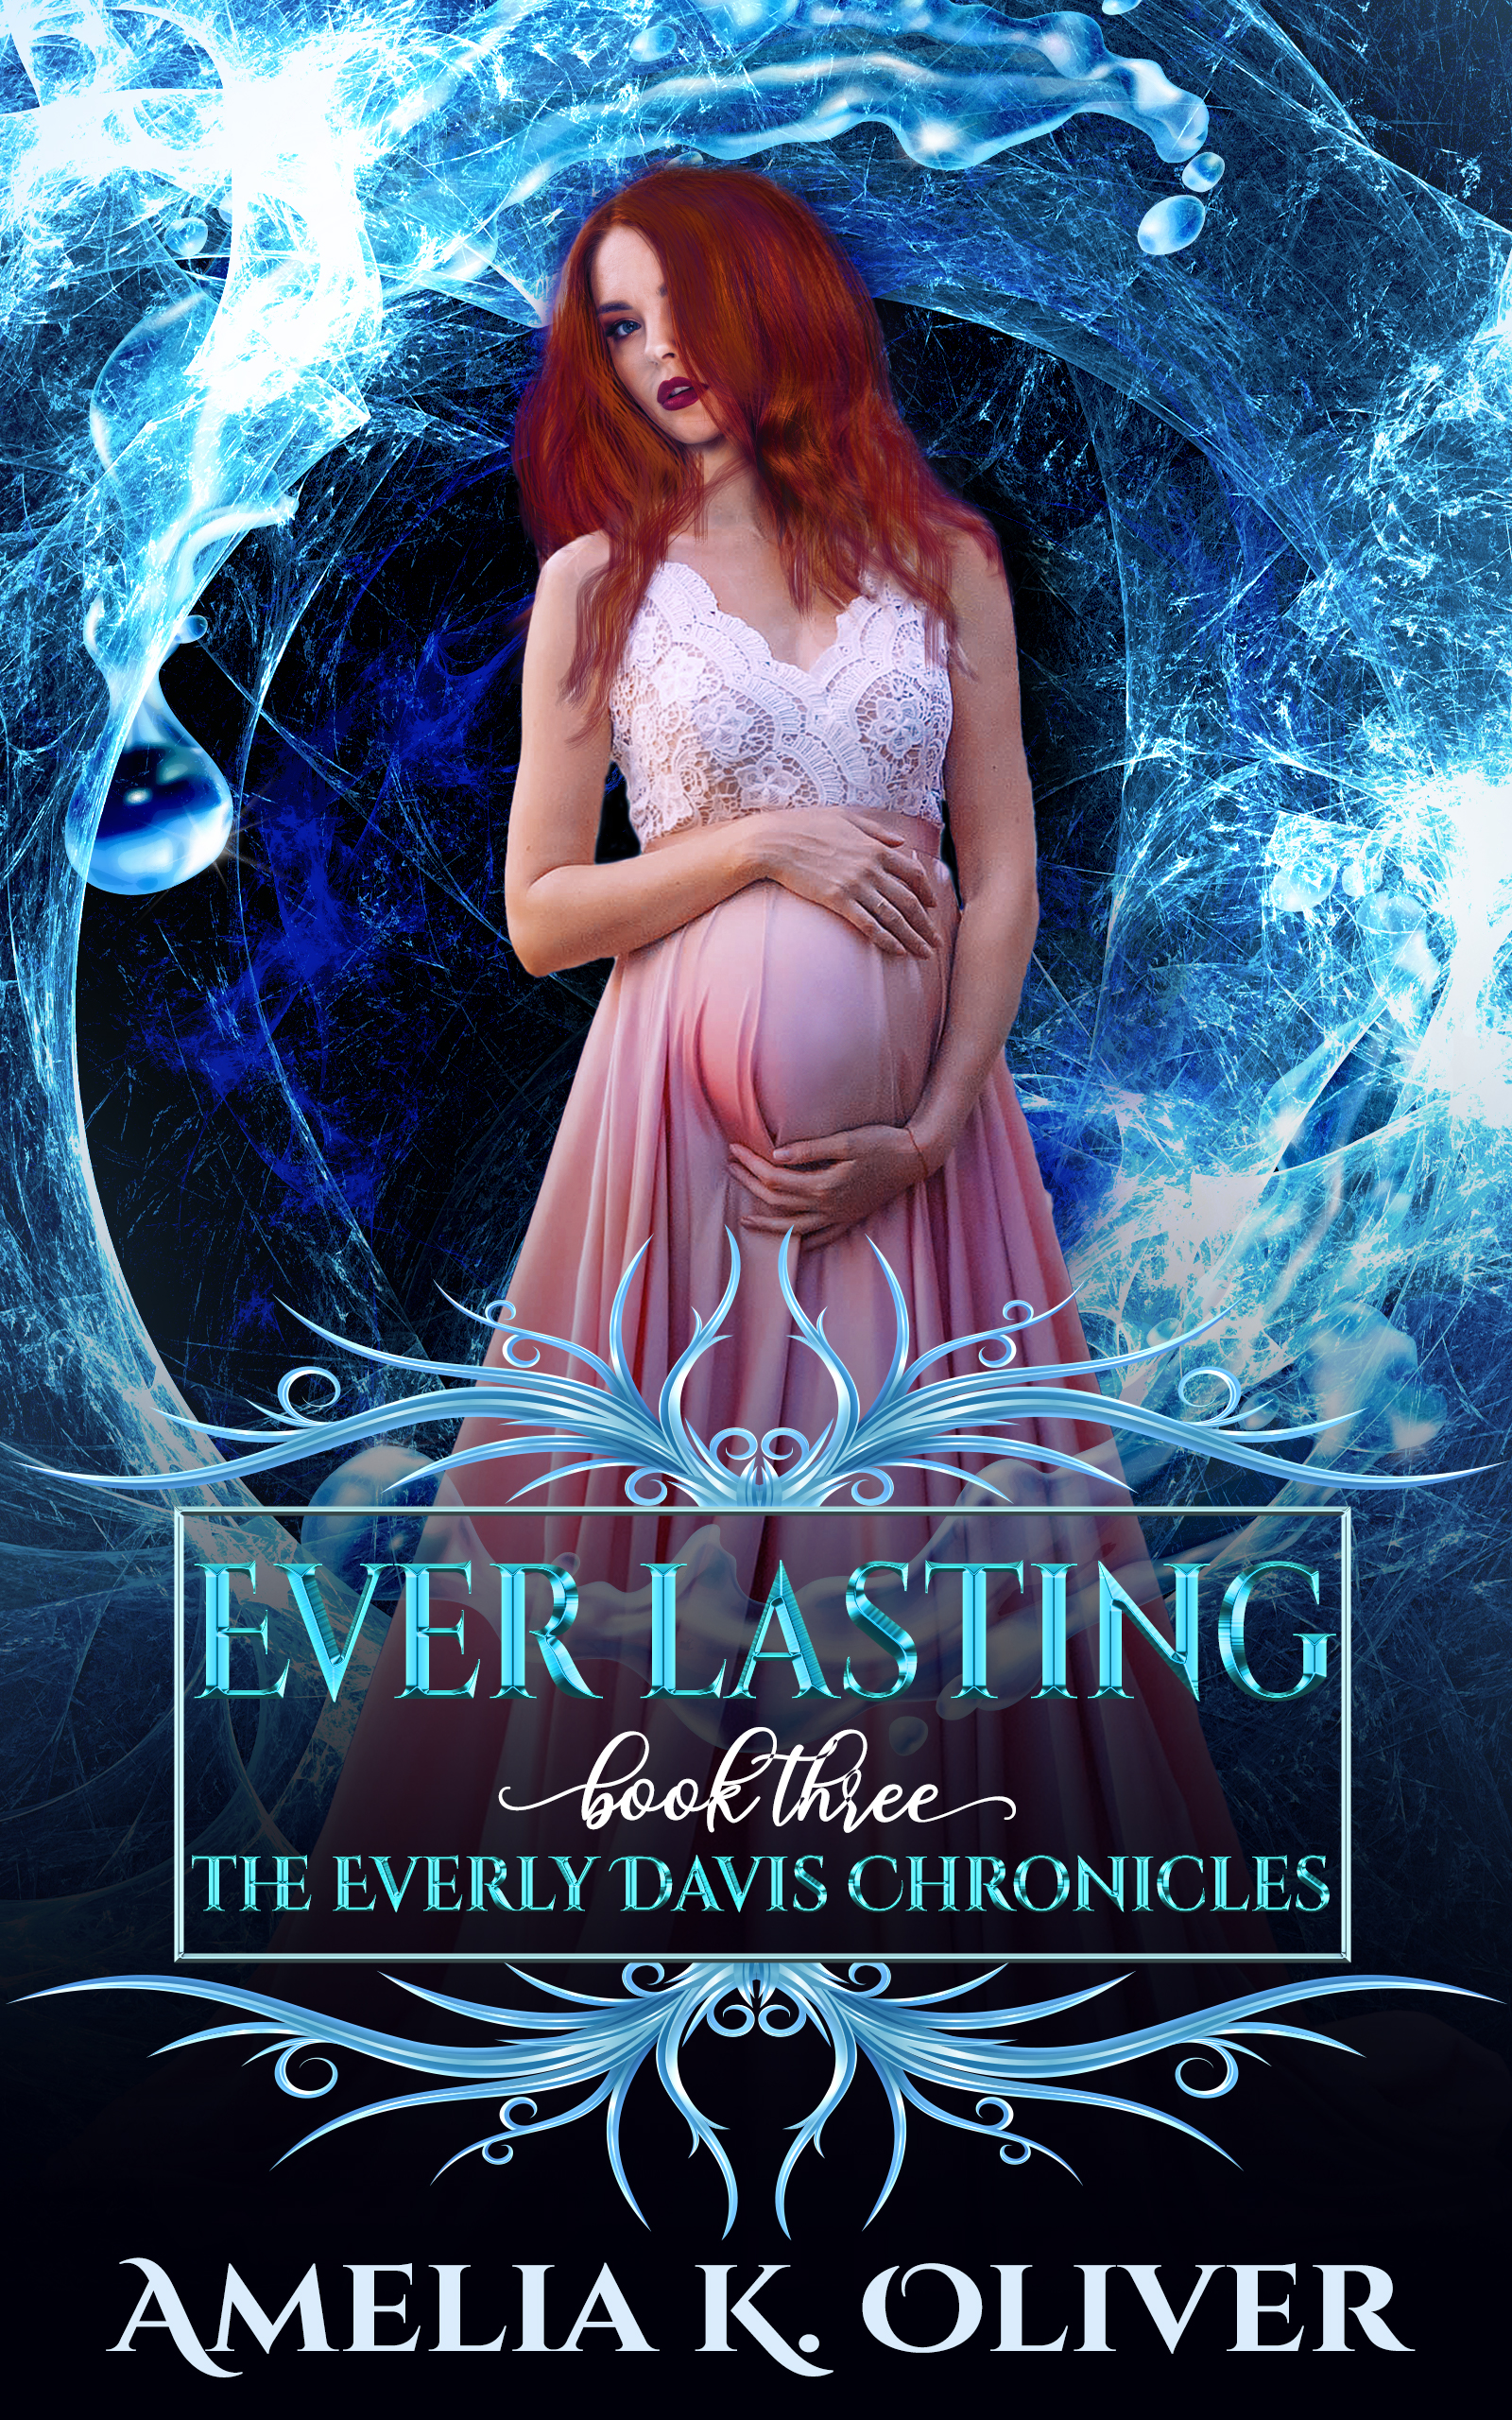 everly davis chronicles Book 3.jpg